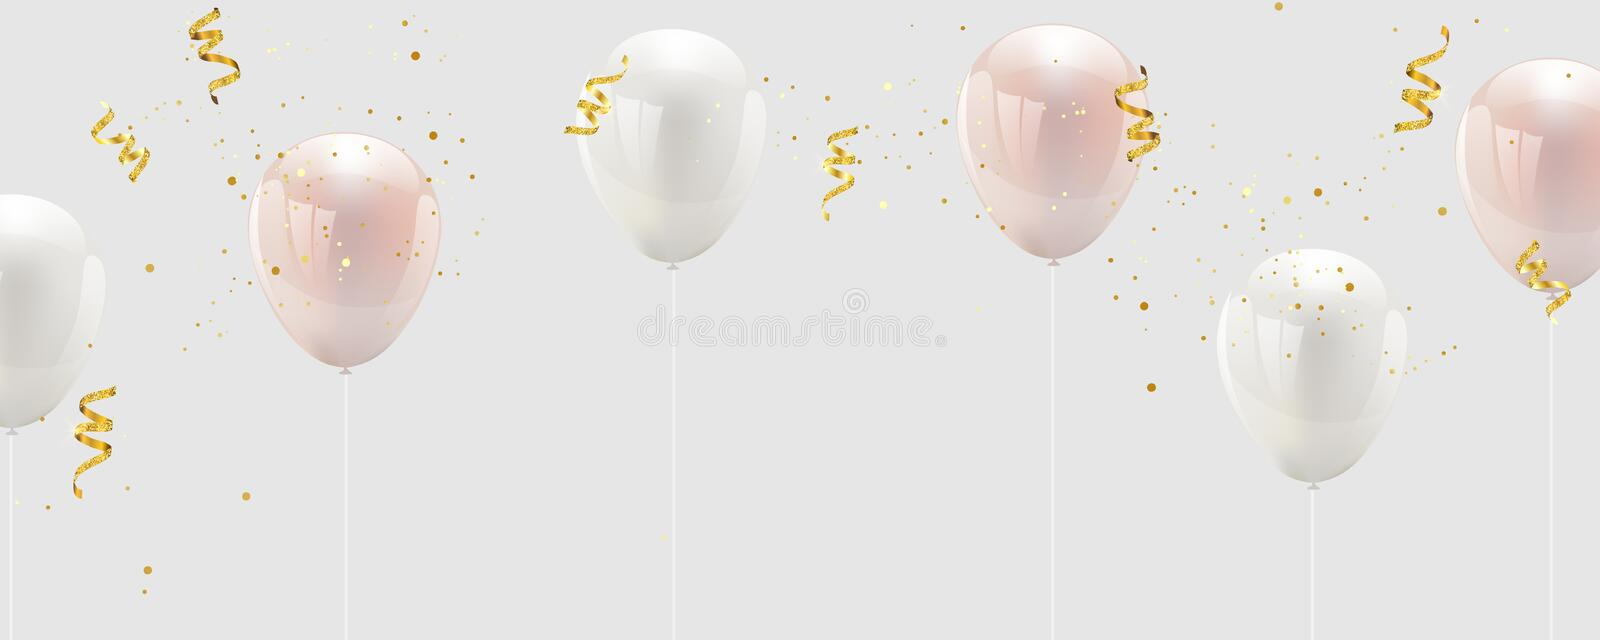 Baloon color pink and white, confetti and gold ribbons. luxury greeting rich card stock illustration